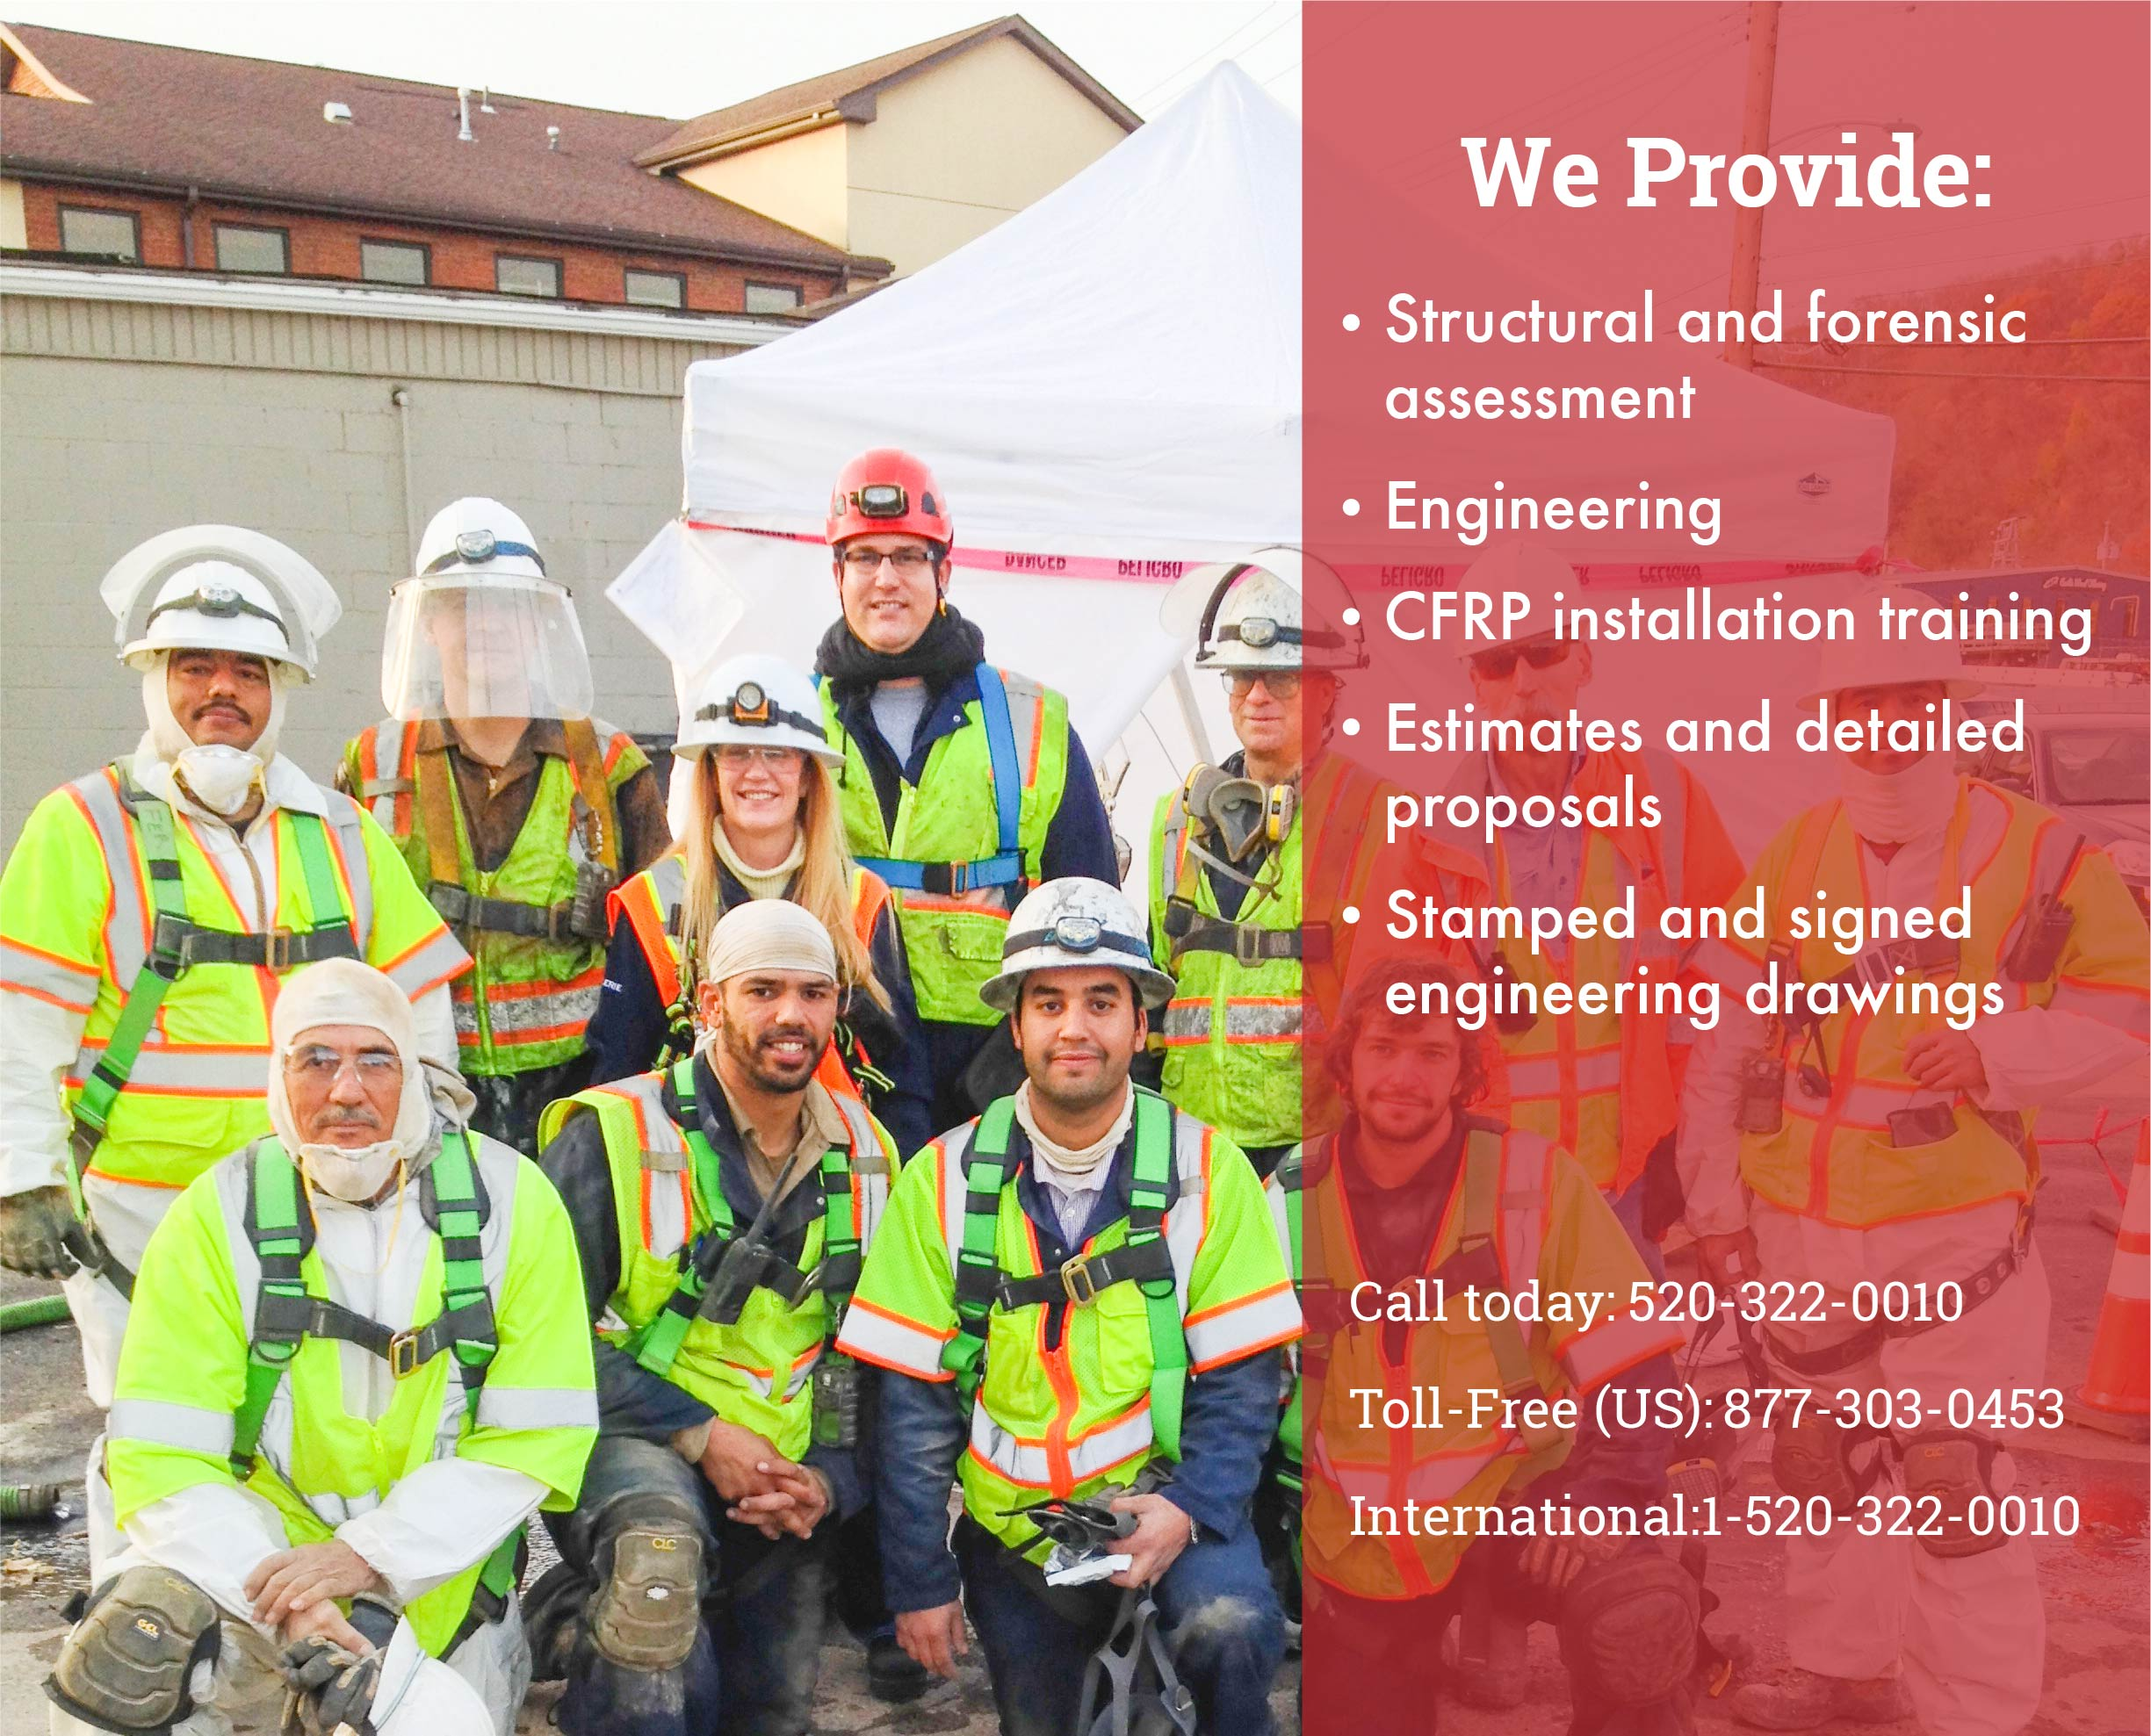 Services we provide structural and forensic assessment. Engineering. CFRP installation training. Estimates and detailed proposals. Stamped and signed engineering drawings.